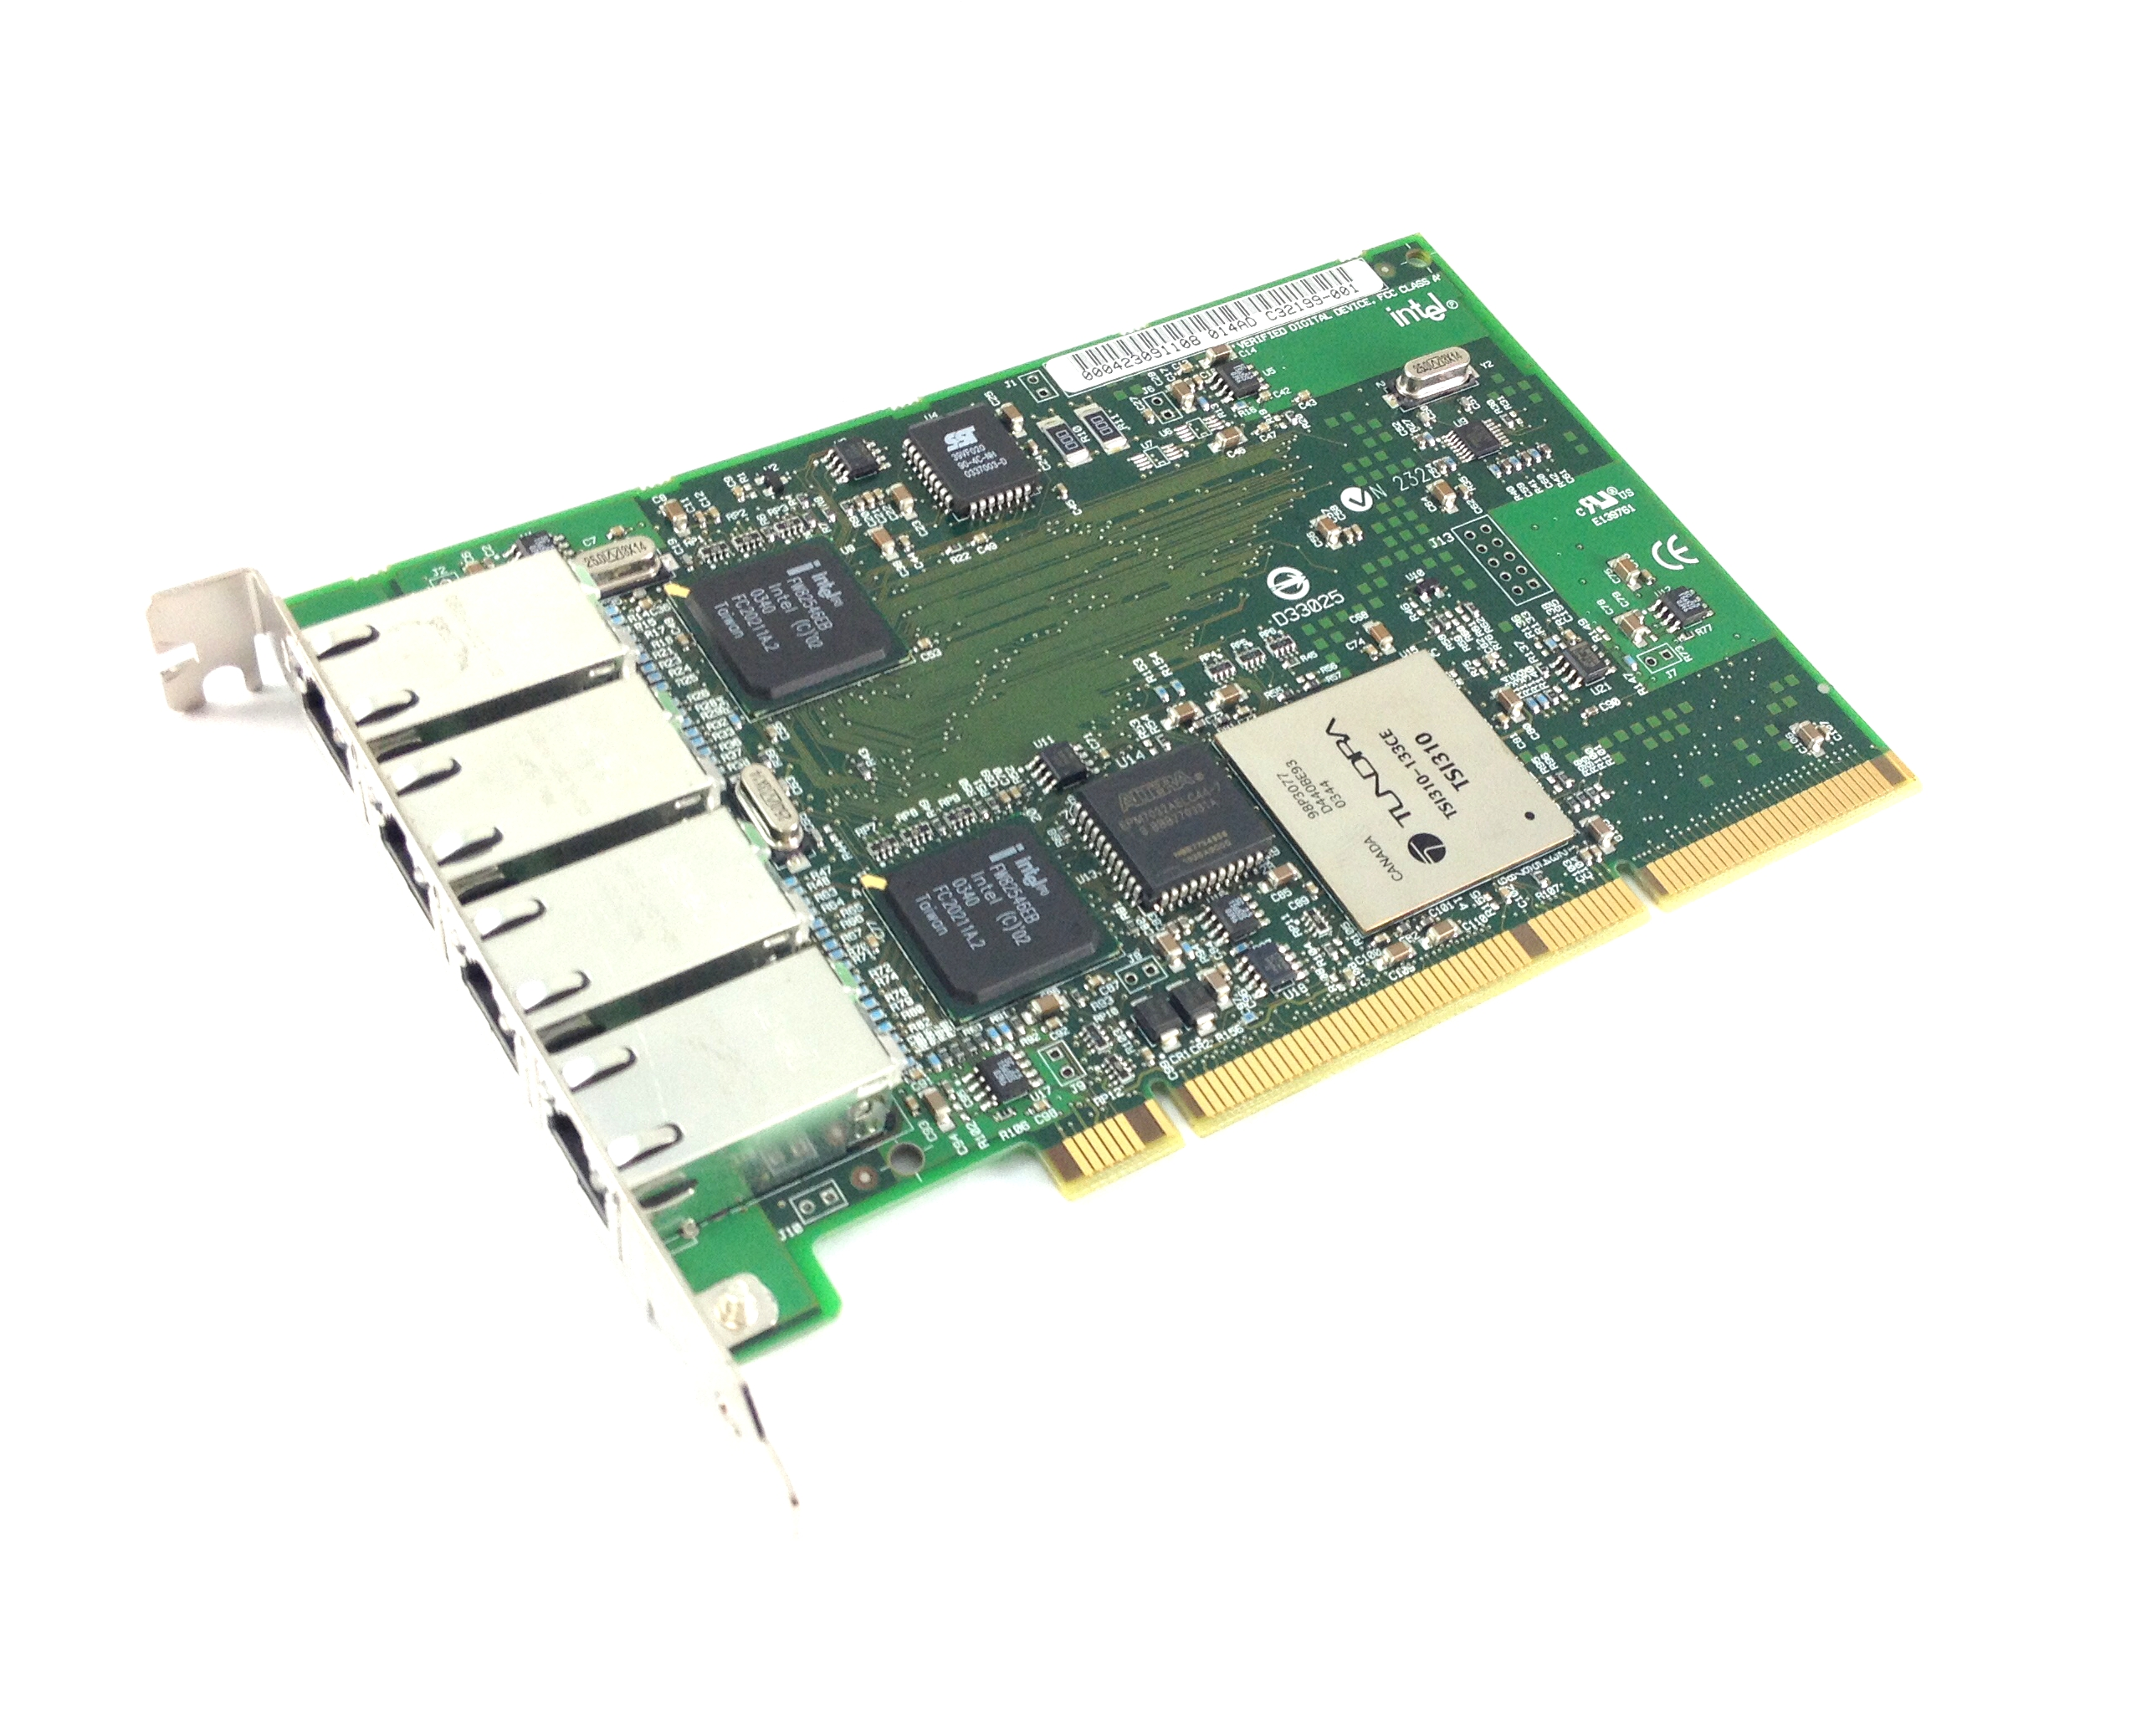 Dell Intel Pro/1000 Mt Nic Quad Port 1Gbps Pci-X Gigabit Ethernet Card (T2774)